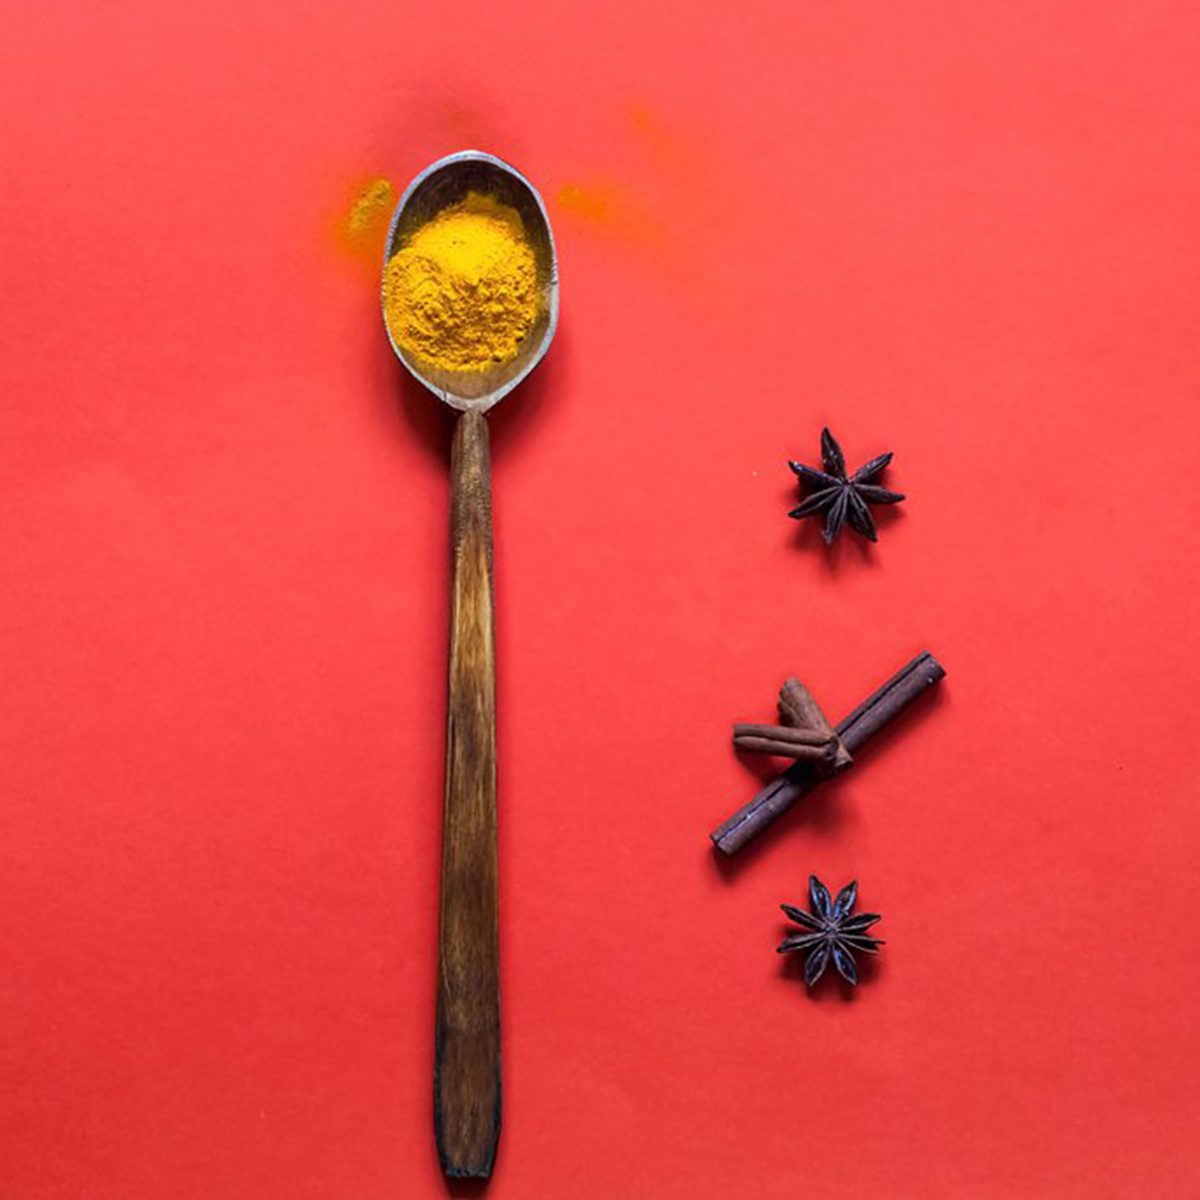 Turmeric in a spoon and star anise on the side against a red background